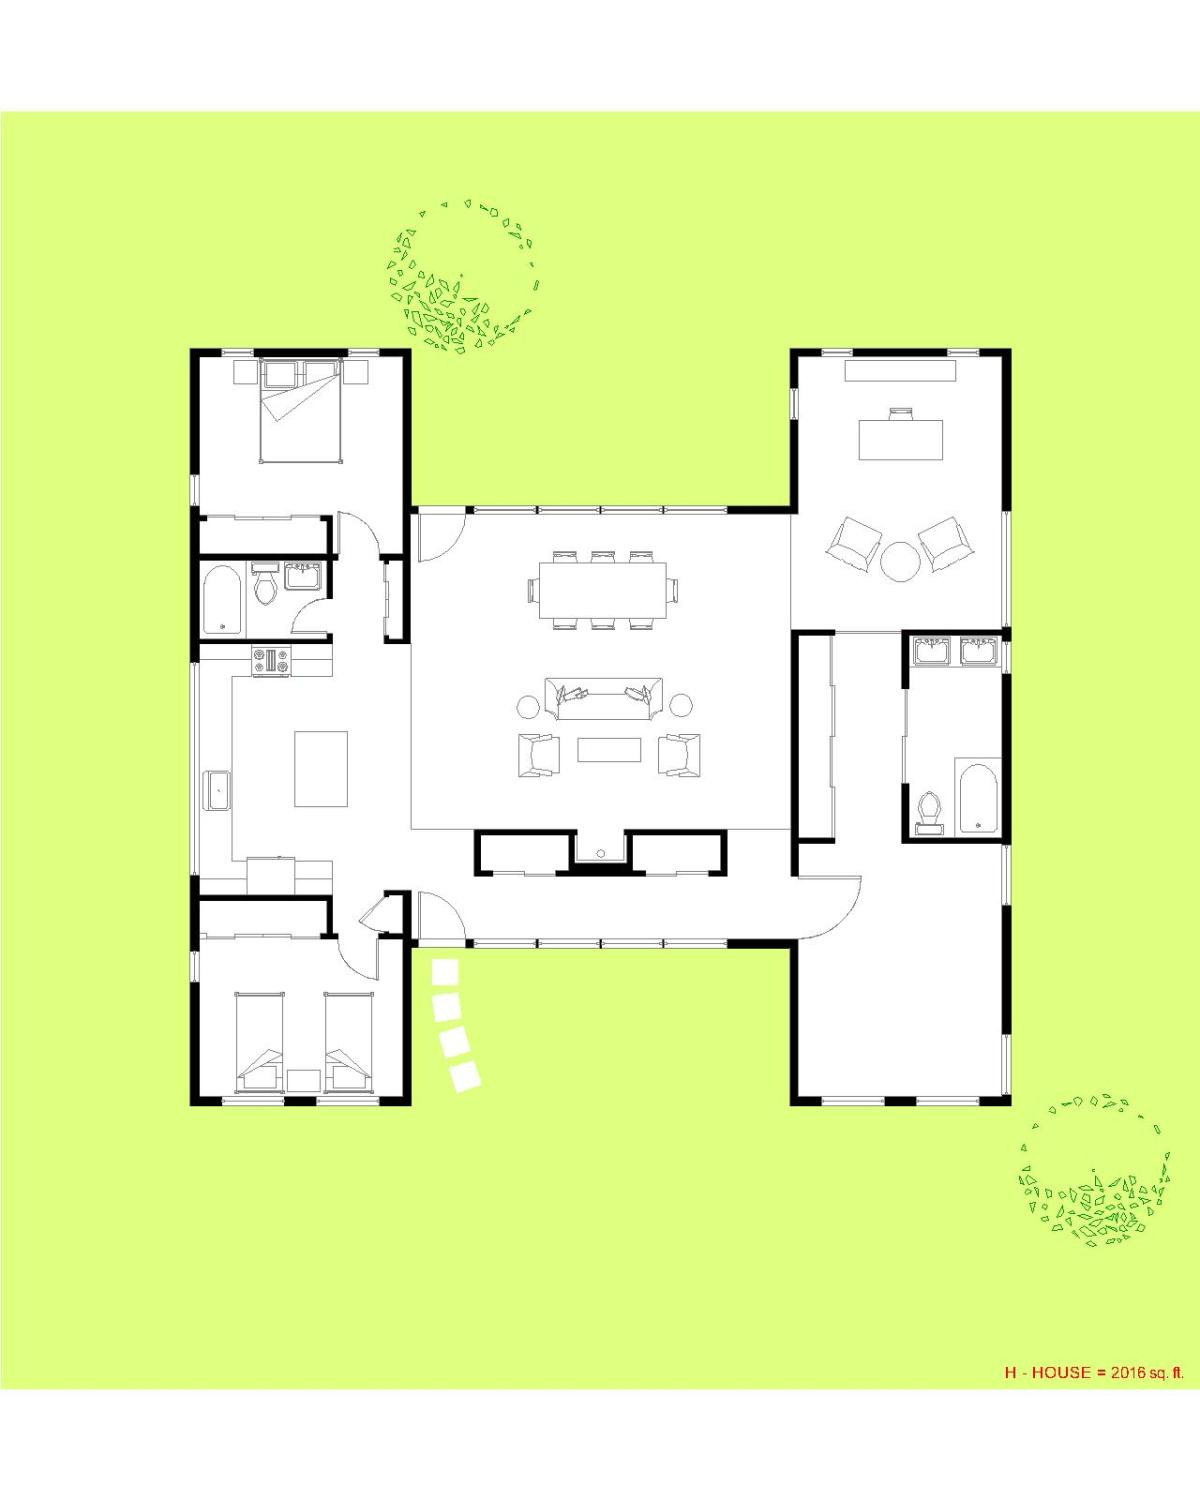 Modern Efficient House Plans Luxury Pictures H House 1 Story Modern Modular — Trillium Architects